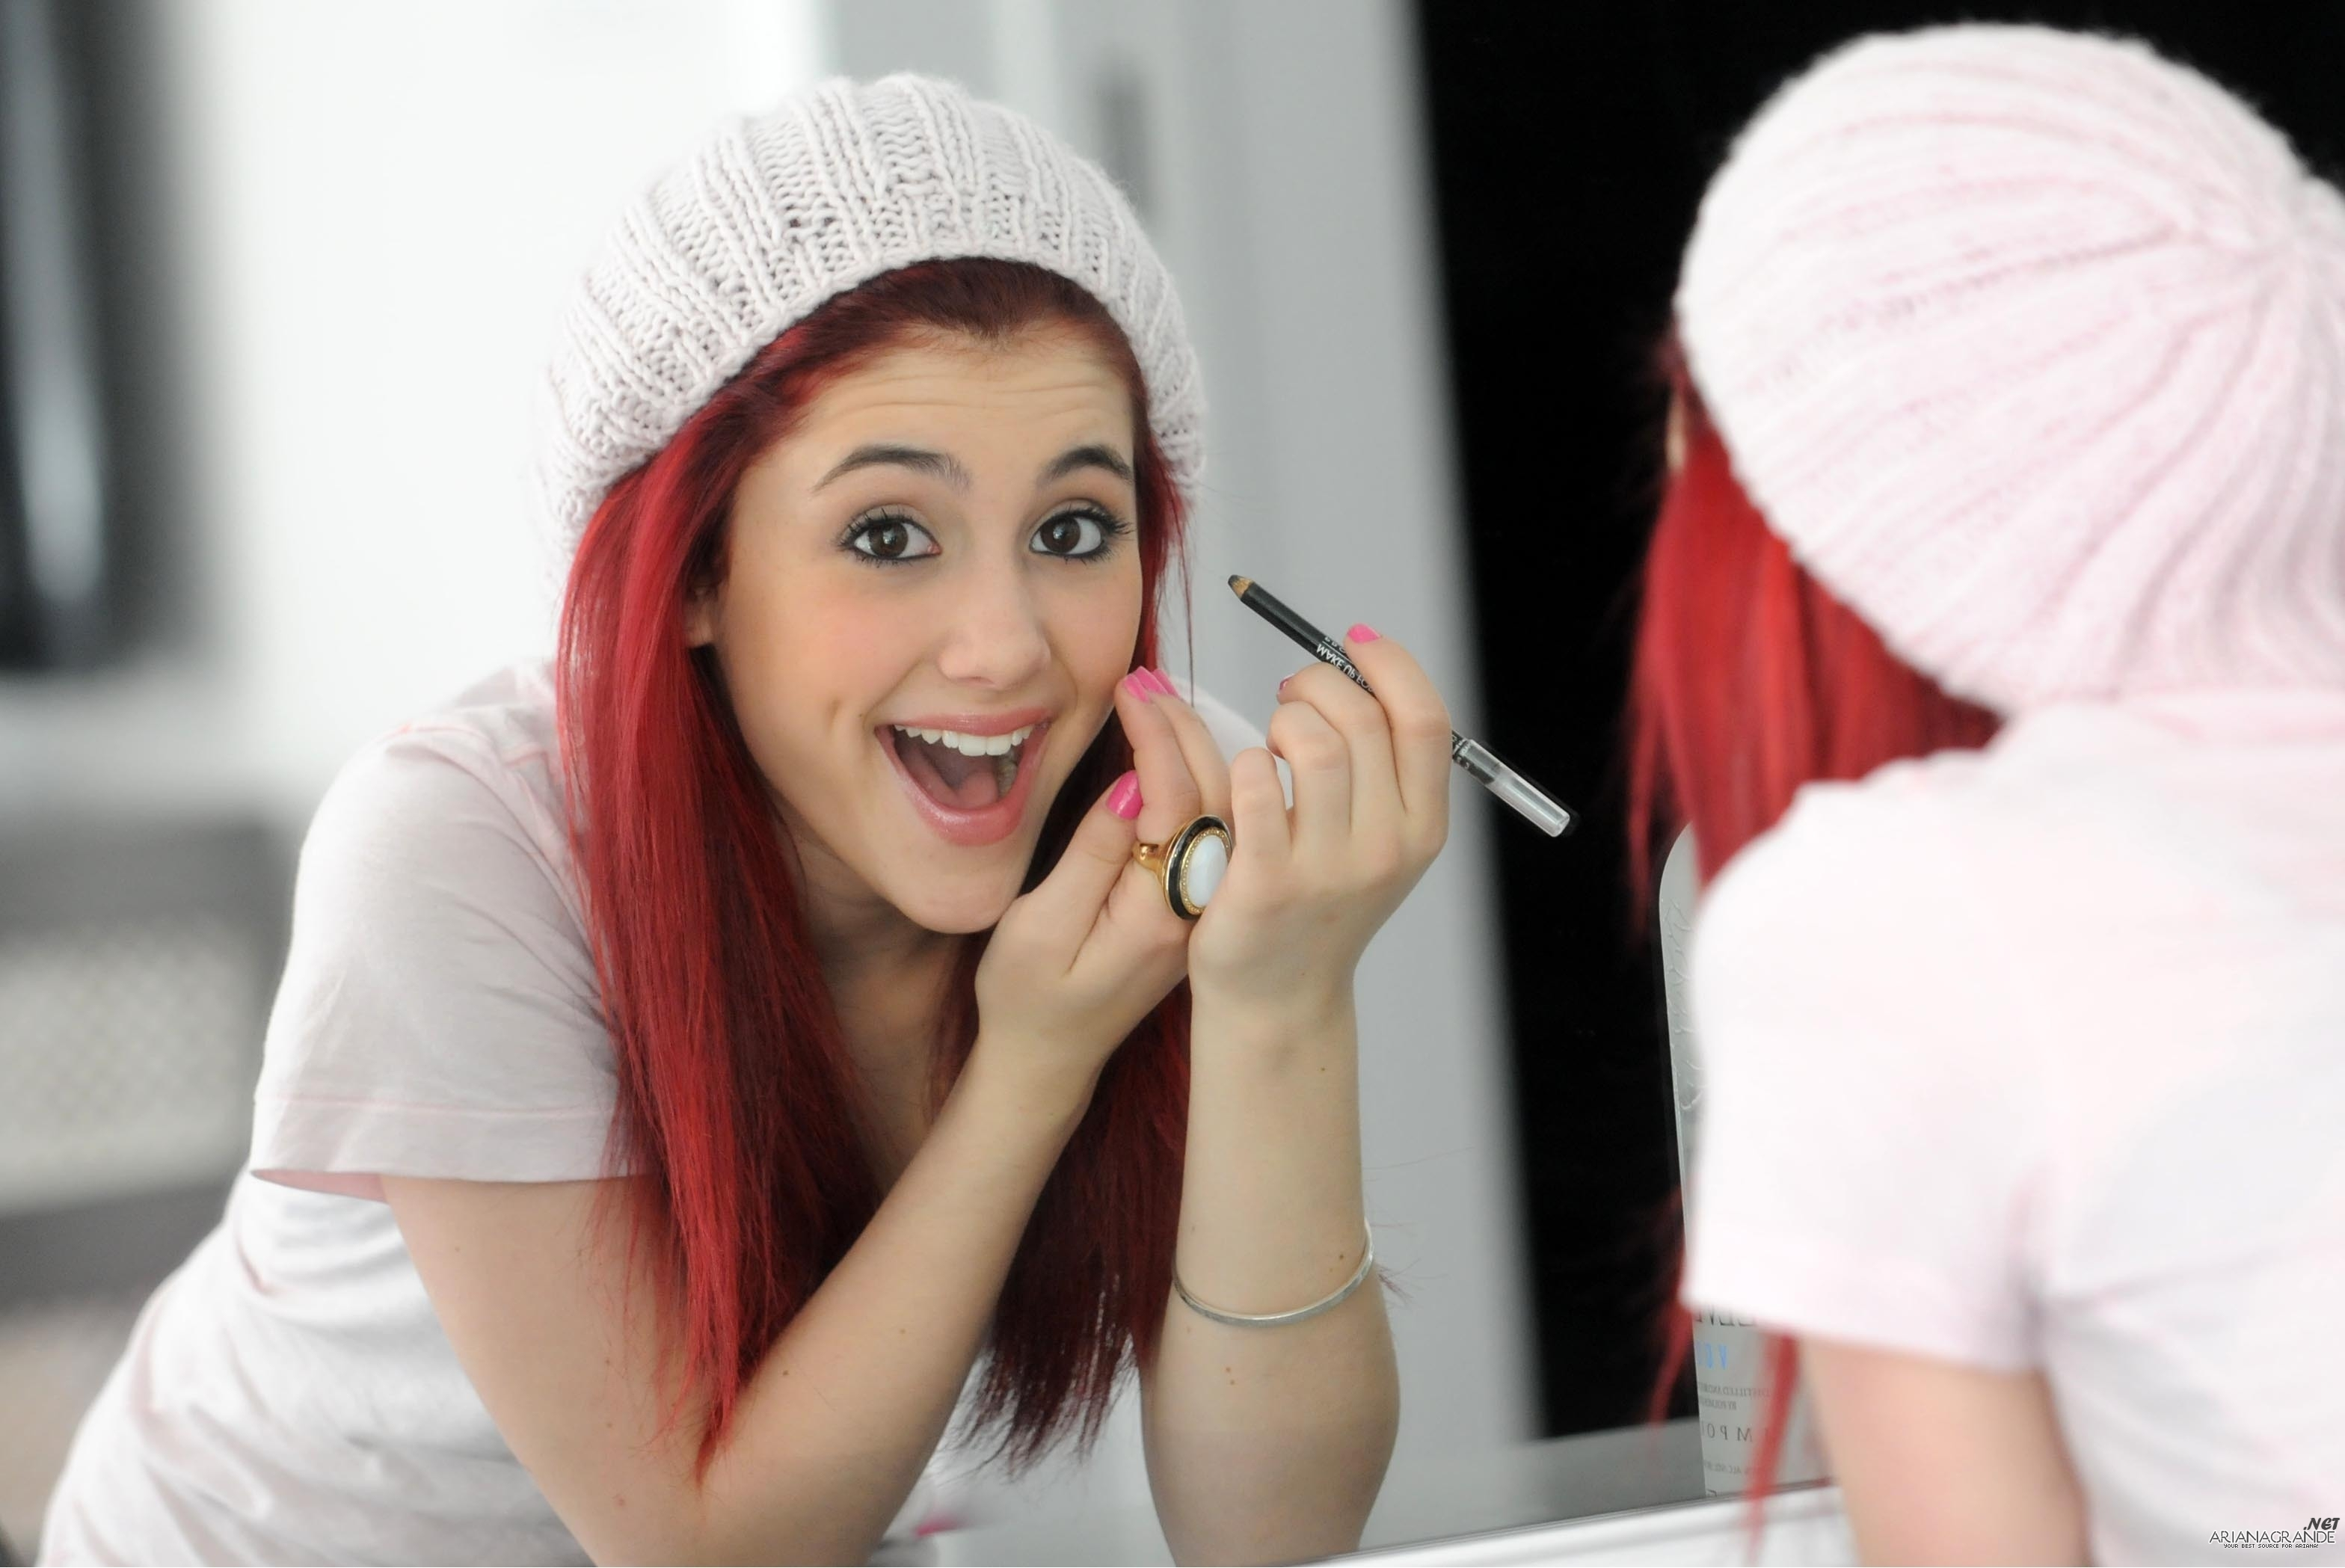 beautiful ariana grande hd wallpapers(high resolution) - all hd